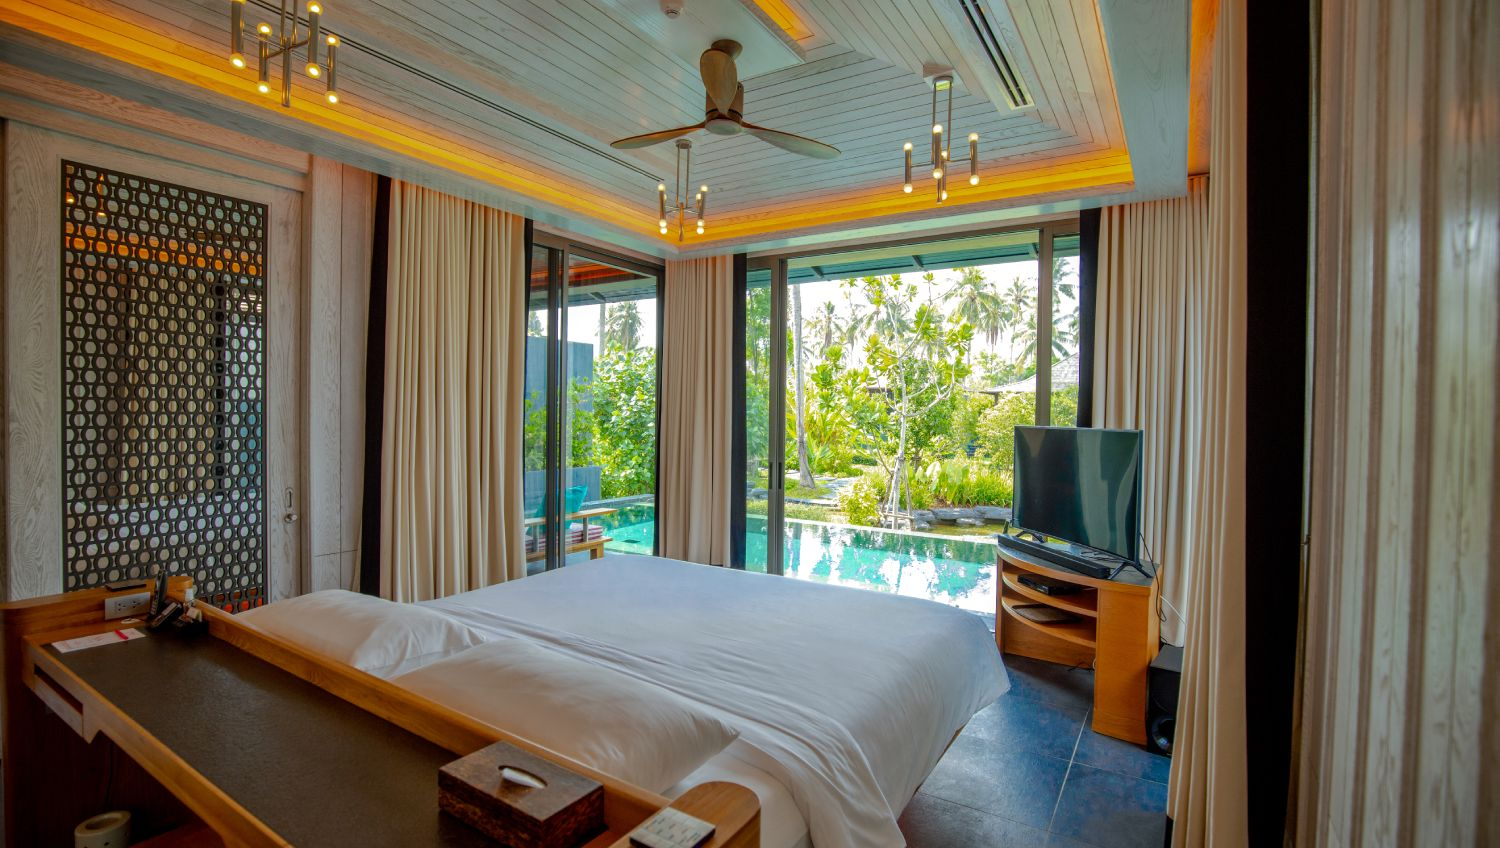 10-Baba-Beach-Club-Phuket-Luxury-Hotel-Natai-Beach-Resort